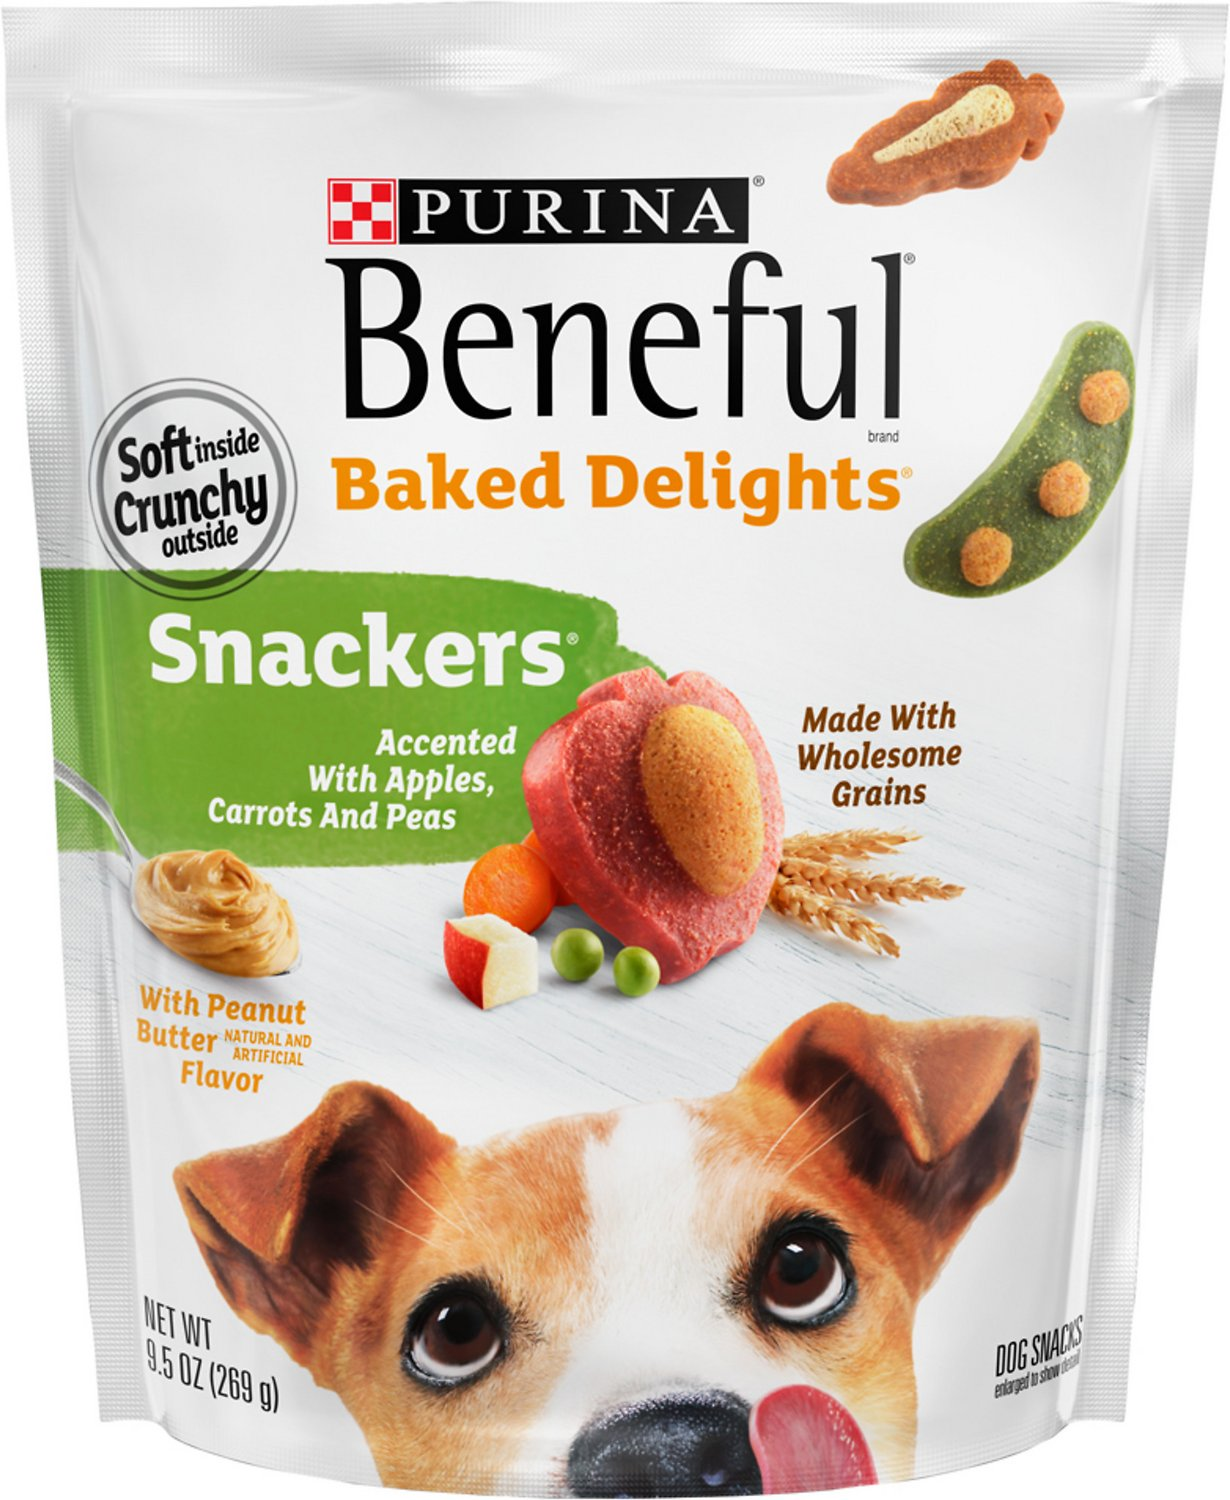 Purina beneful baked delights snackers with apples carrots peas video publicscrutiny Image collections